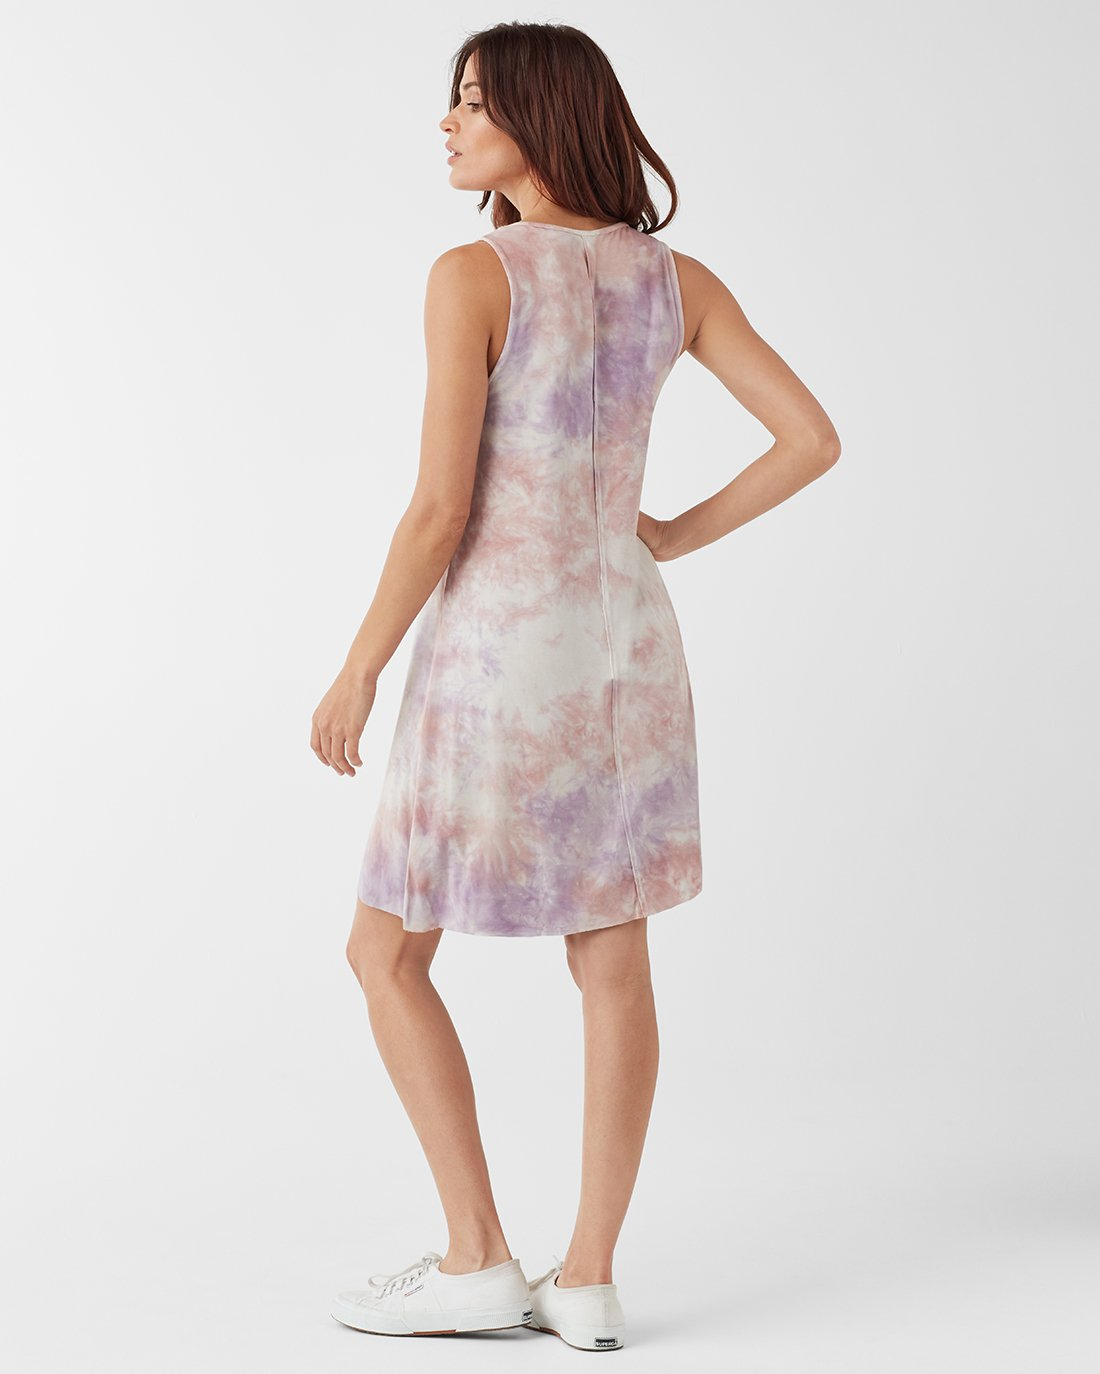 Splendid Purple Haze Tank Dress